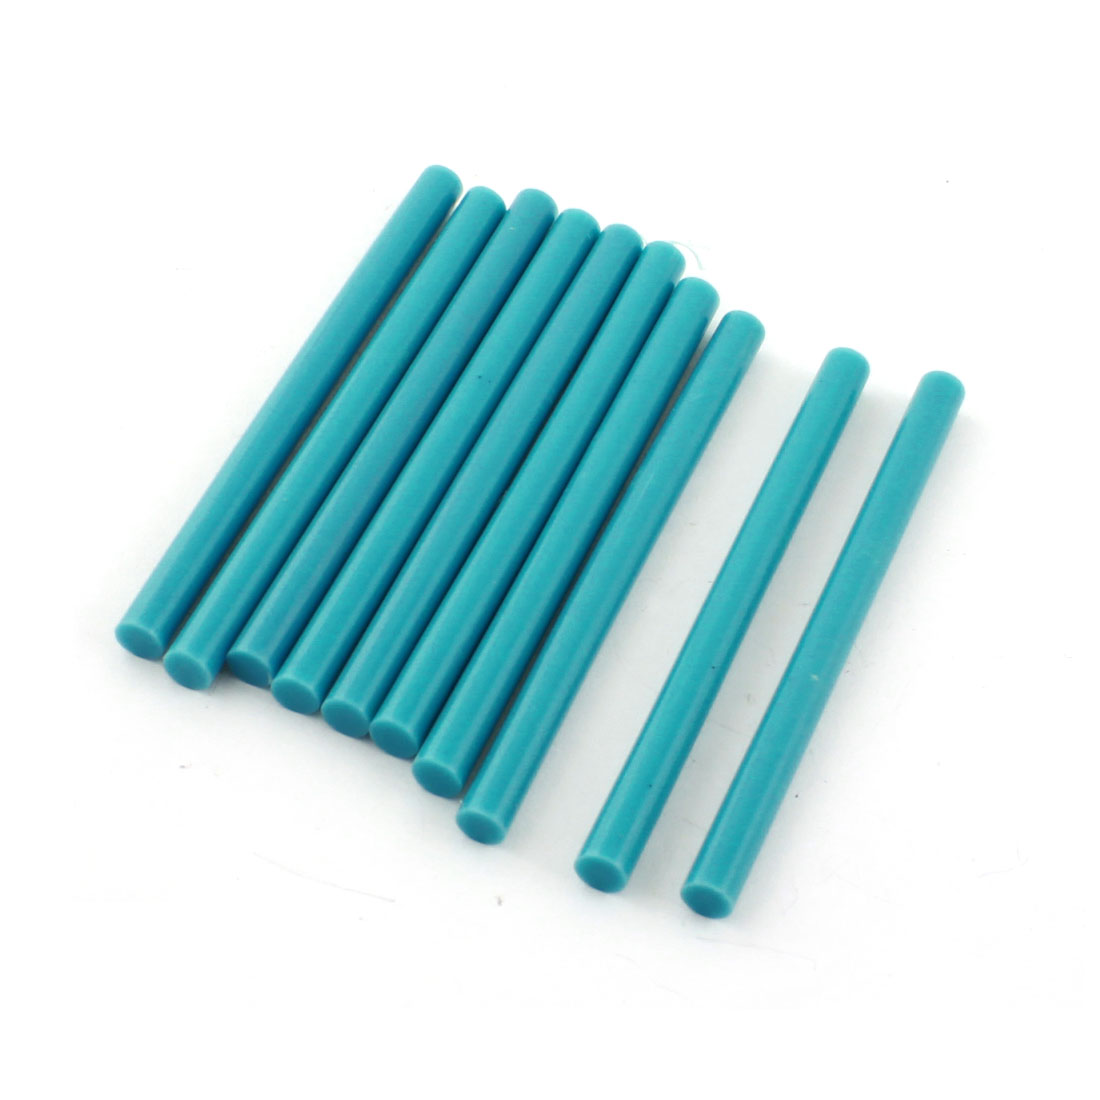 10 Pcs Teal Hot Melt Glue Gun Adhesive Sticks 7mm x 100mm